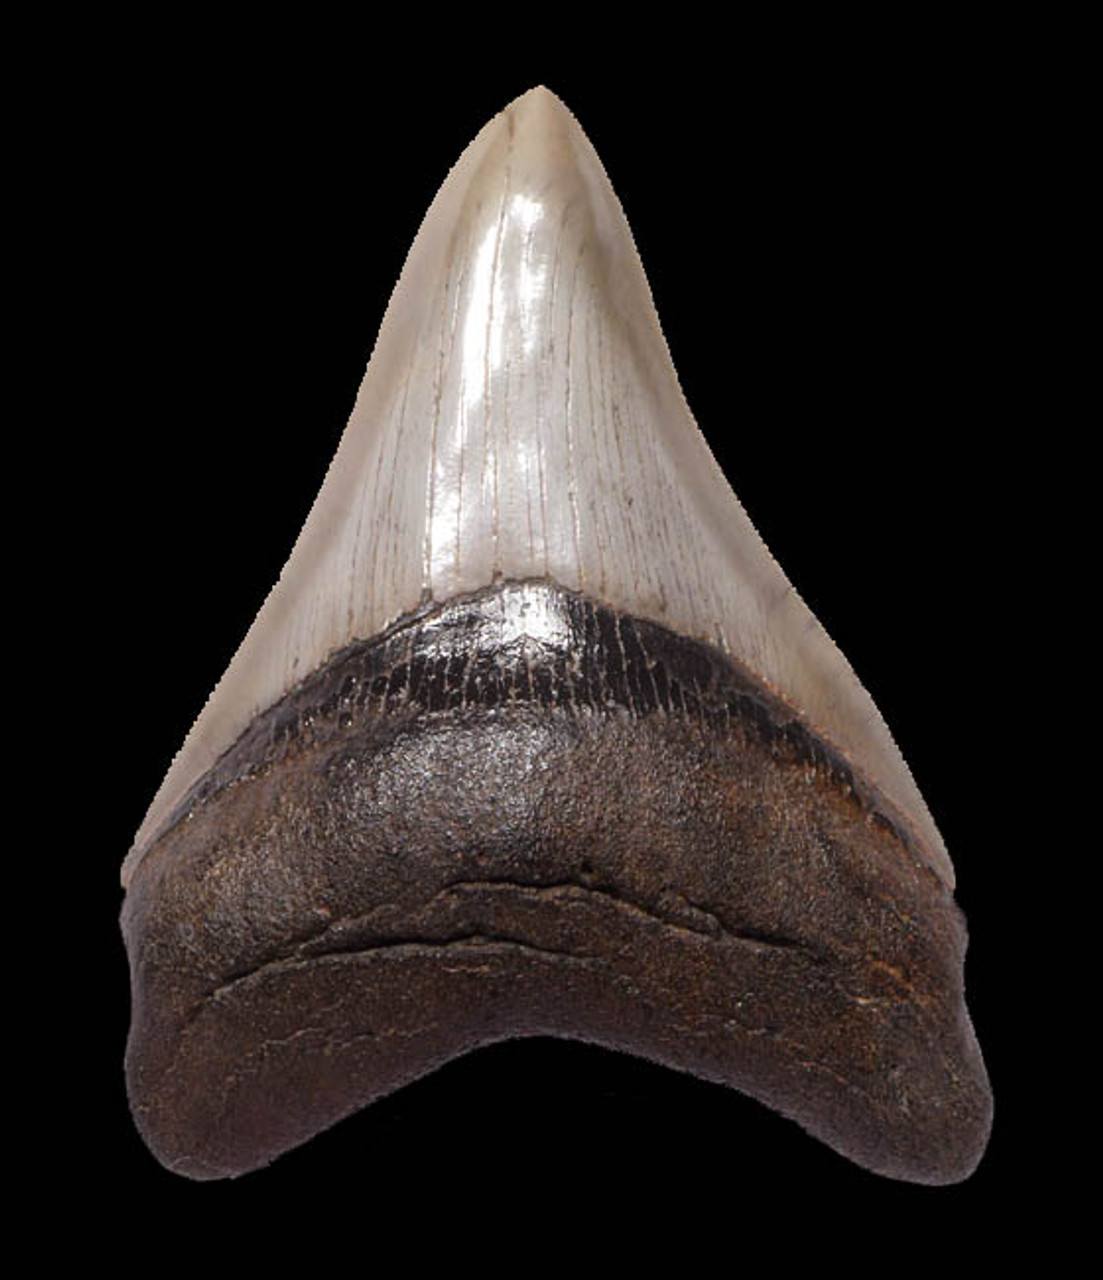 PEARL WHITE 4.5 INCH MEGALODON SHARK TOOTH WITH CHOICE PRESERVATION *SH6-257